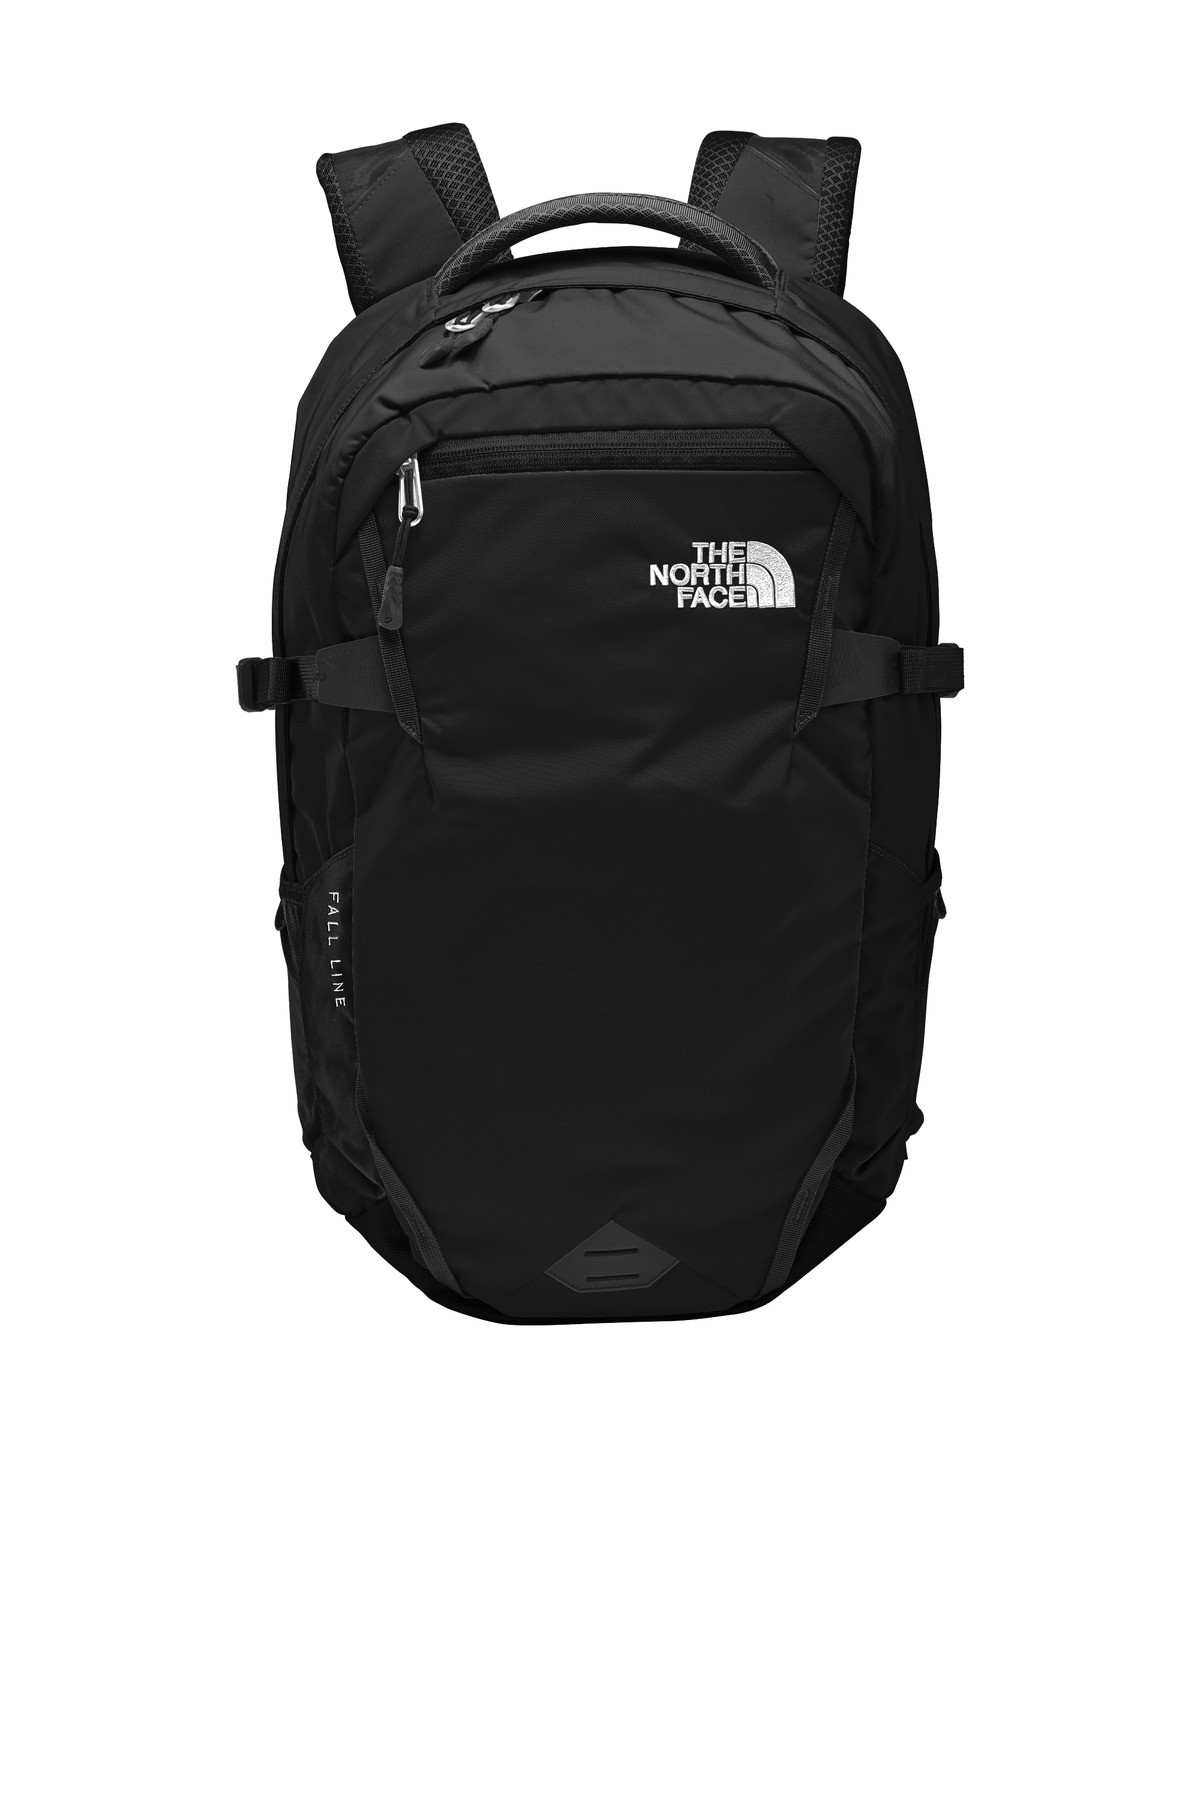 The North Face Fall Line Backpack.-The North Face